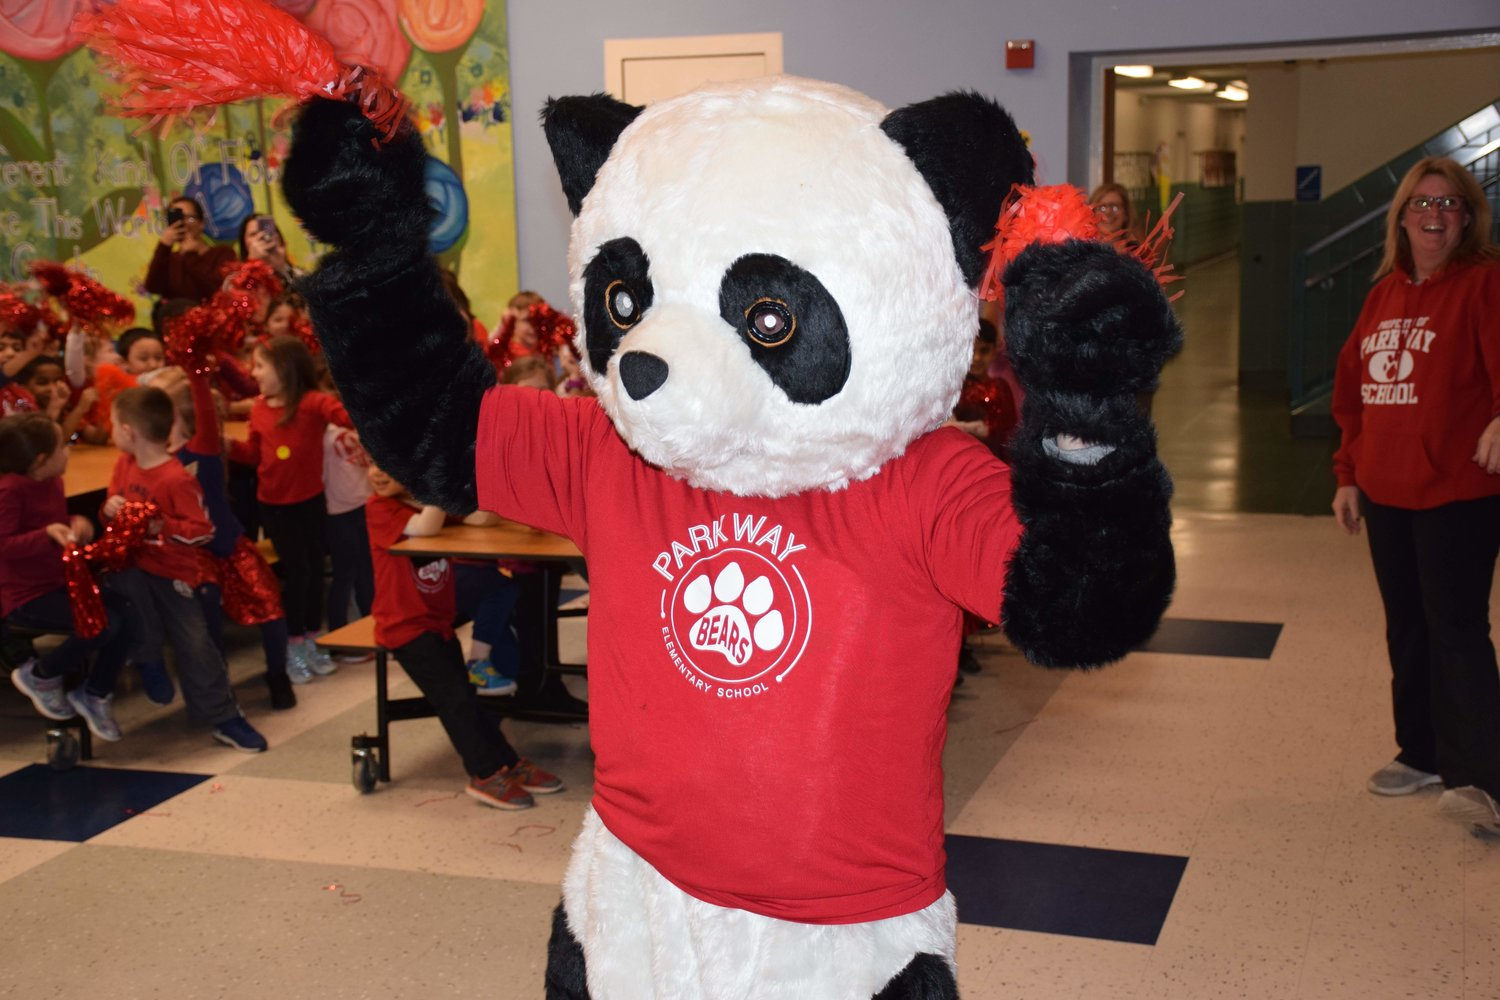 The Parkway Bear mascot was introduced during the school's PARP pep rally.